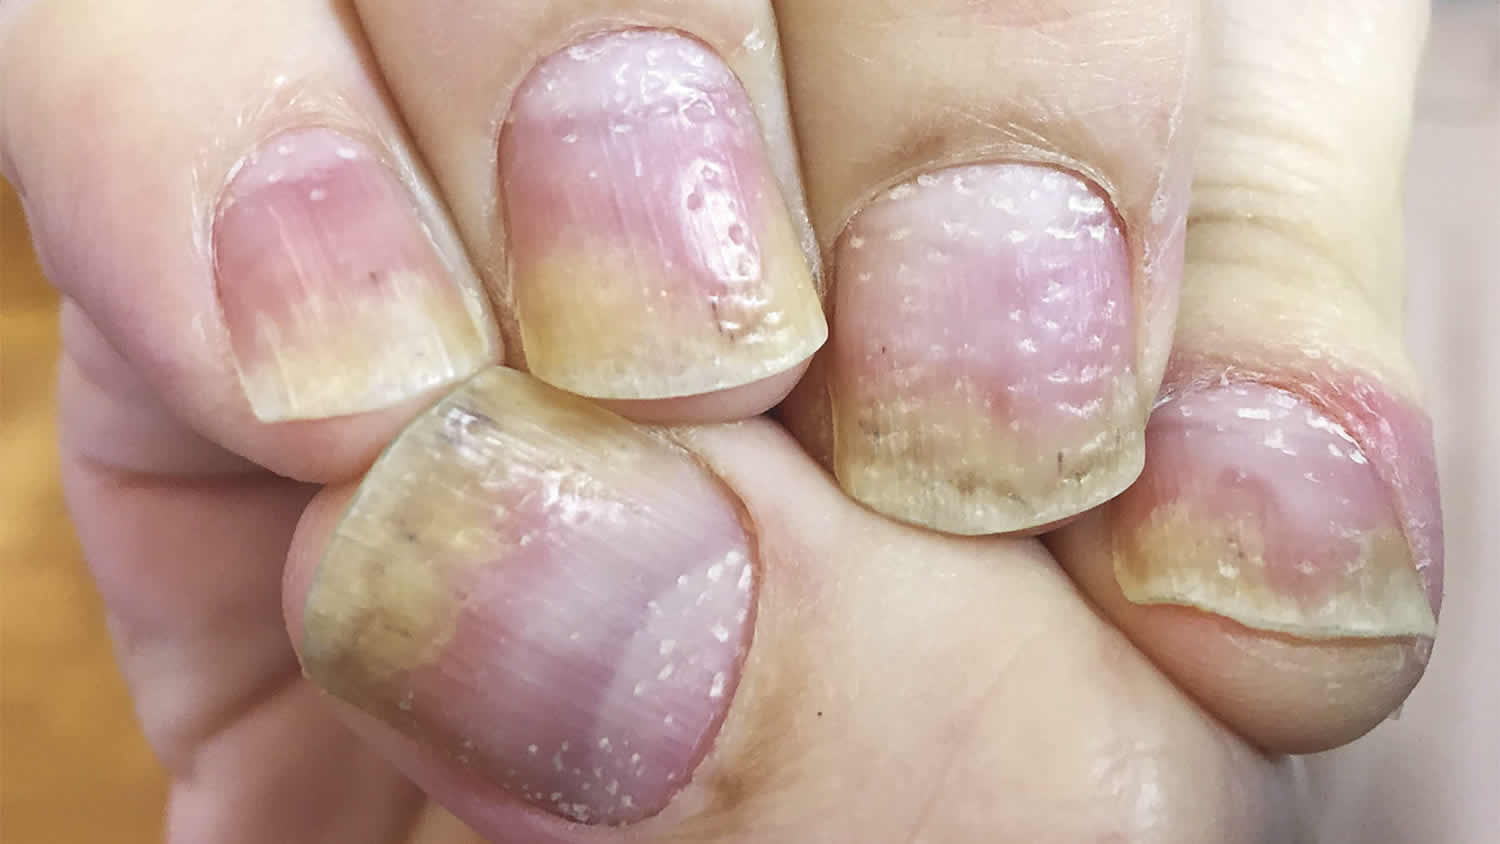 nail psoriasis causes and treatment)